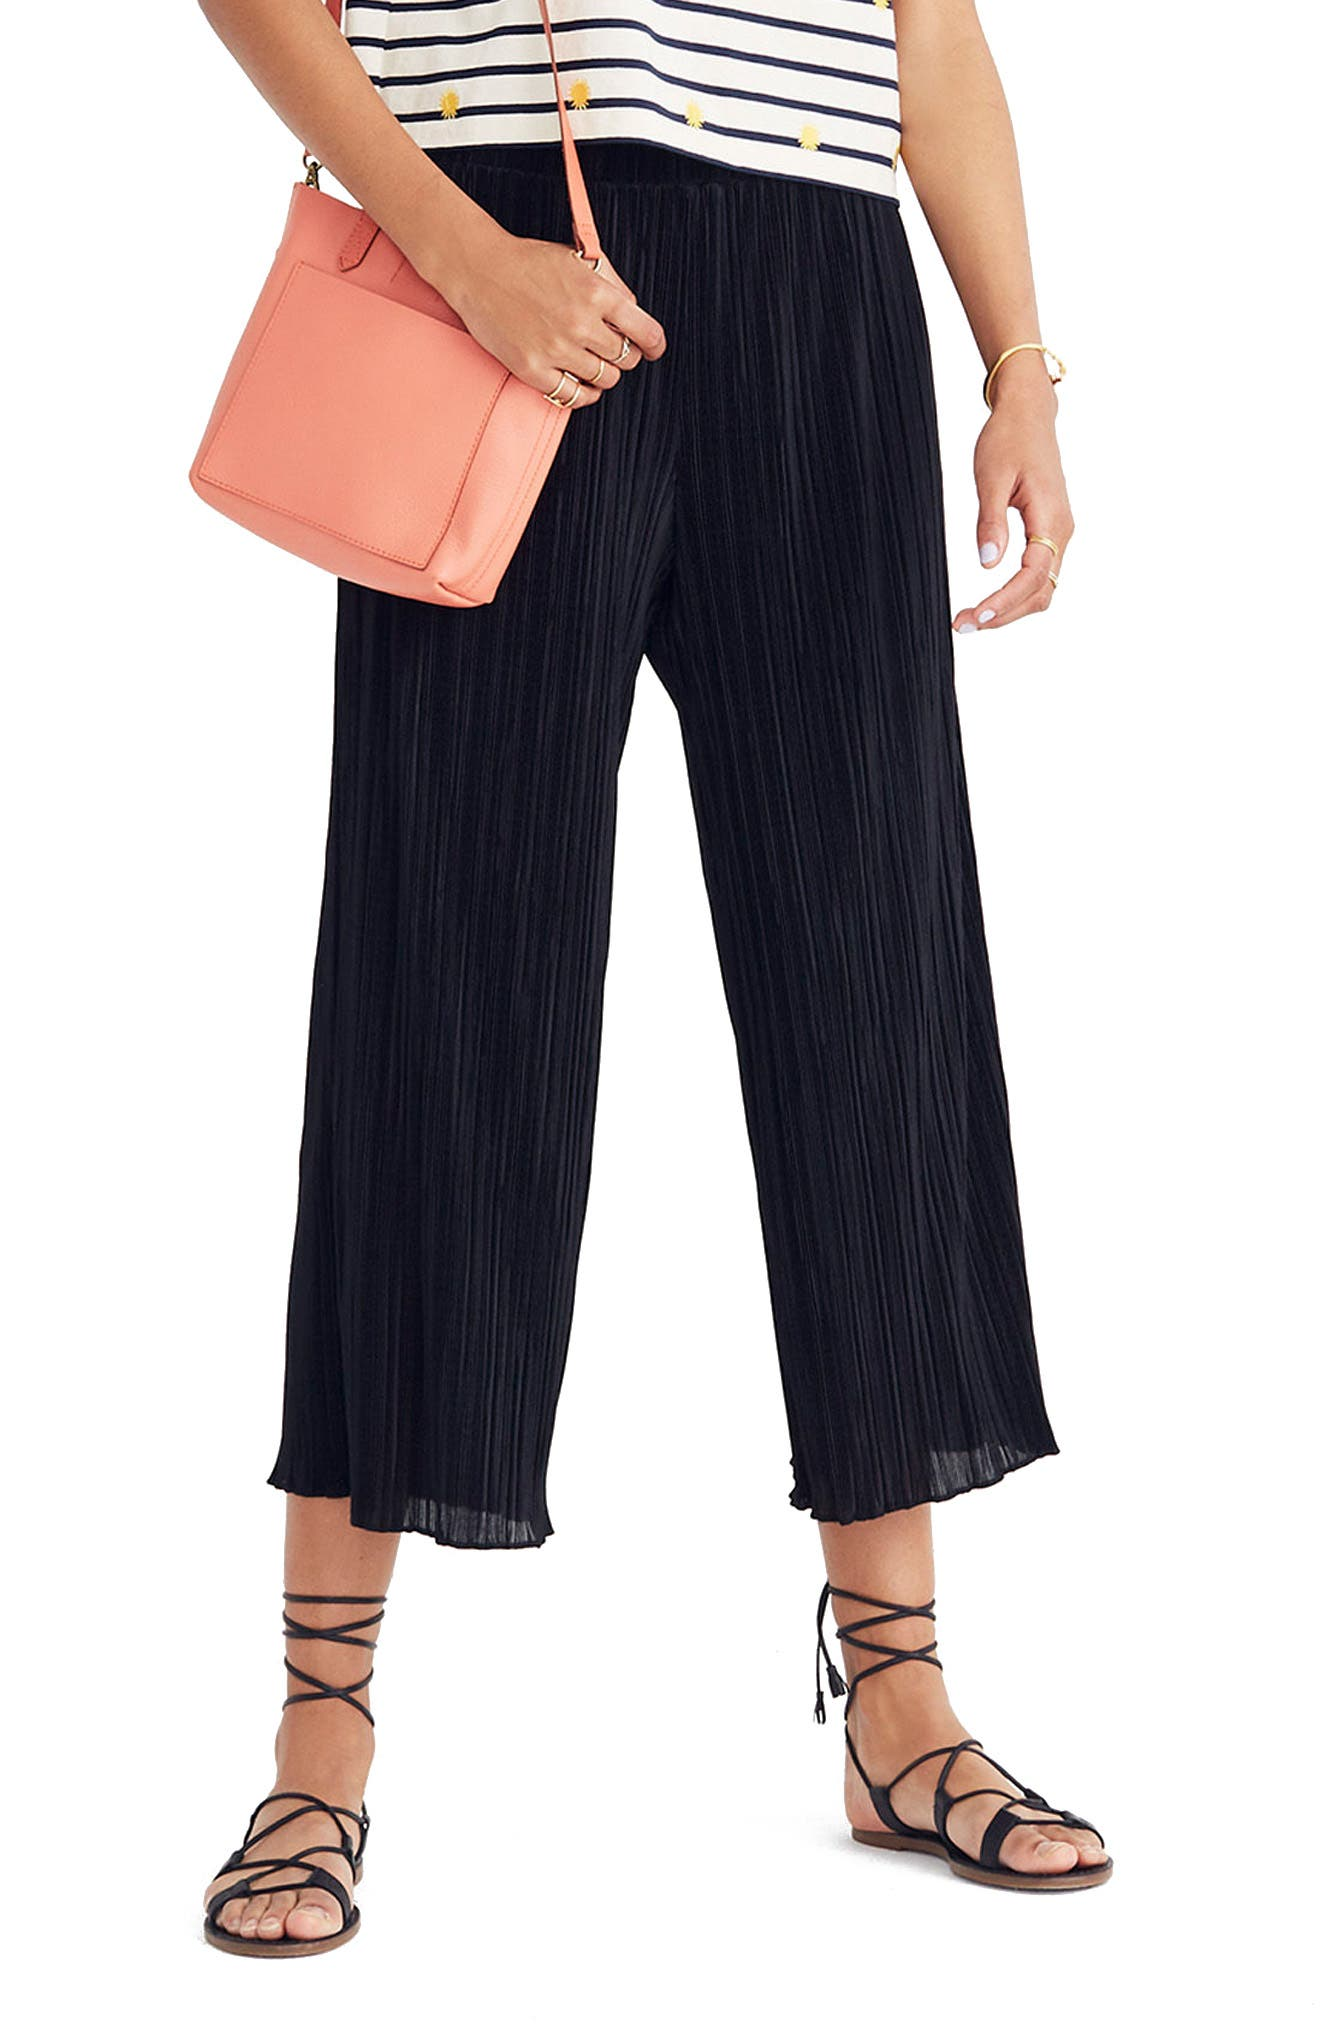 Texture & Thread Micropleat Wide Leg Pants,                             Main thumbnail 1, color,                             001